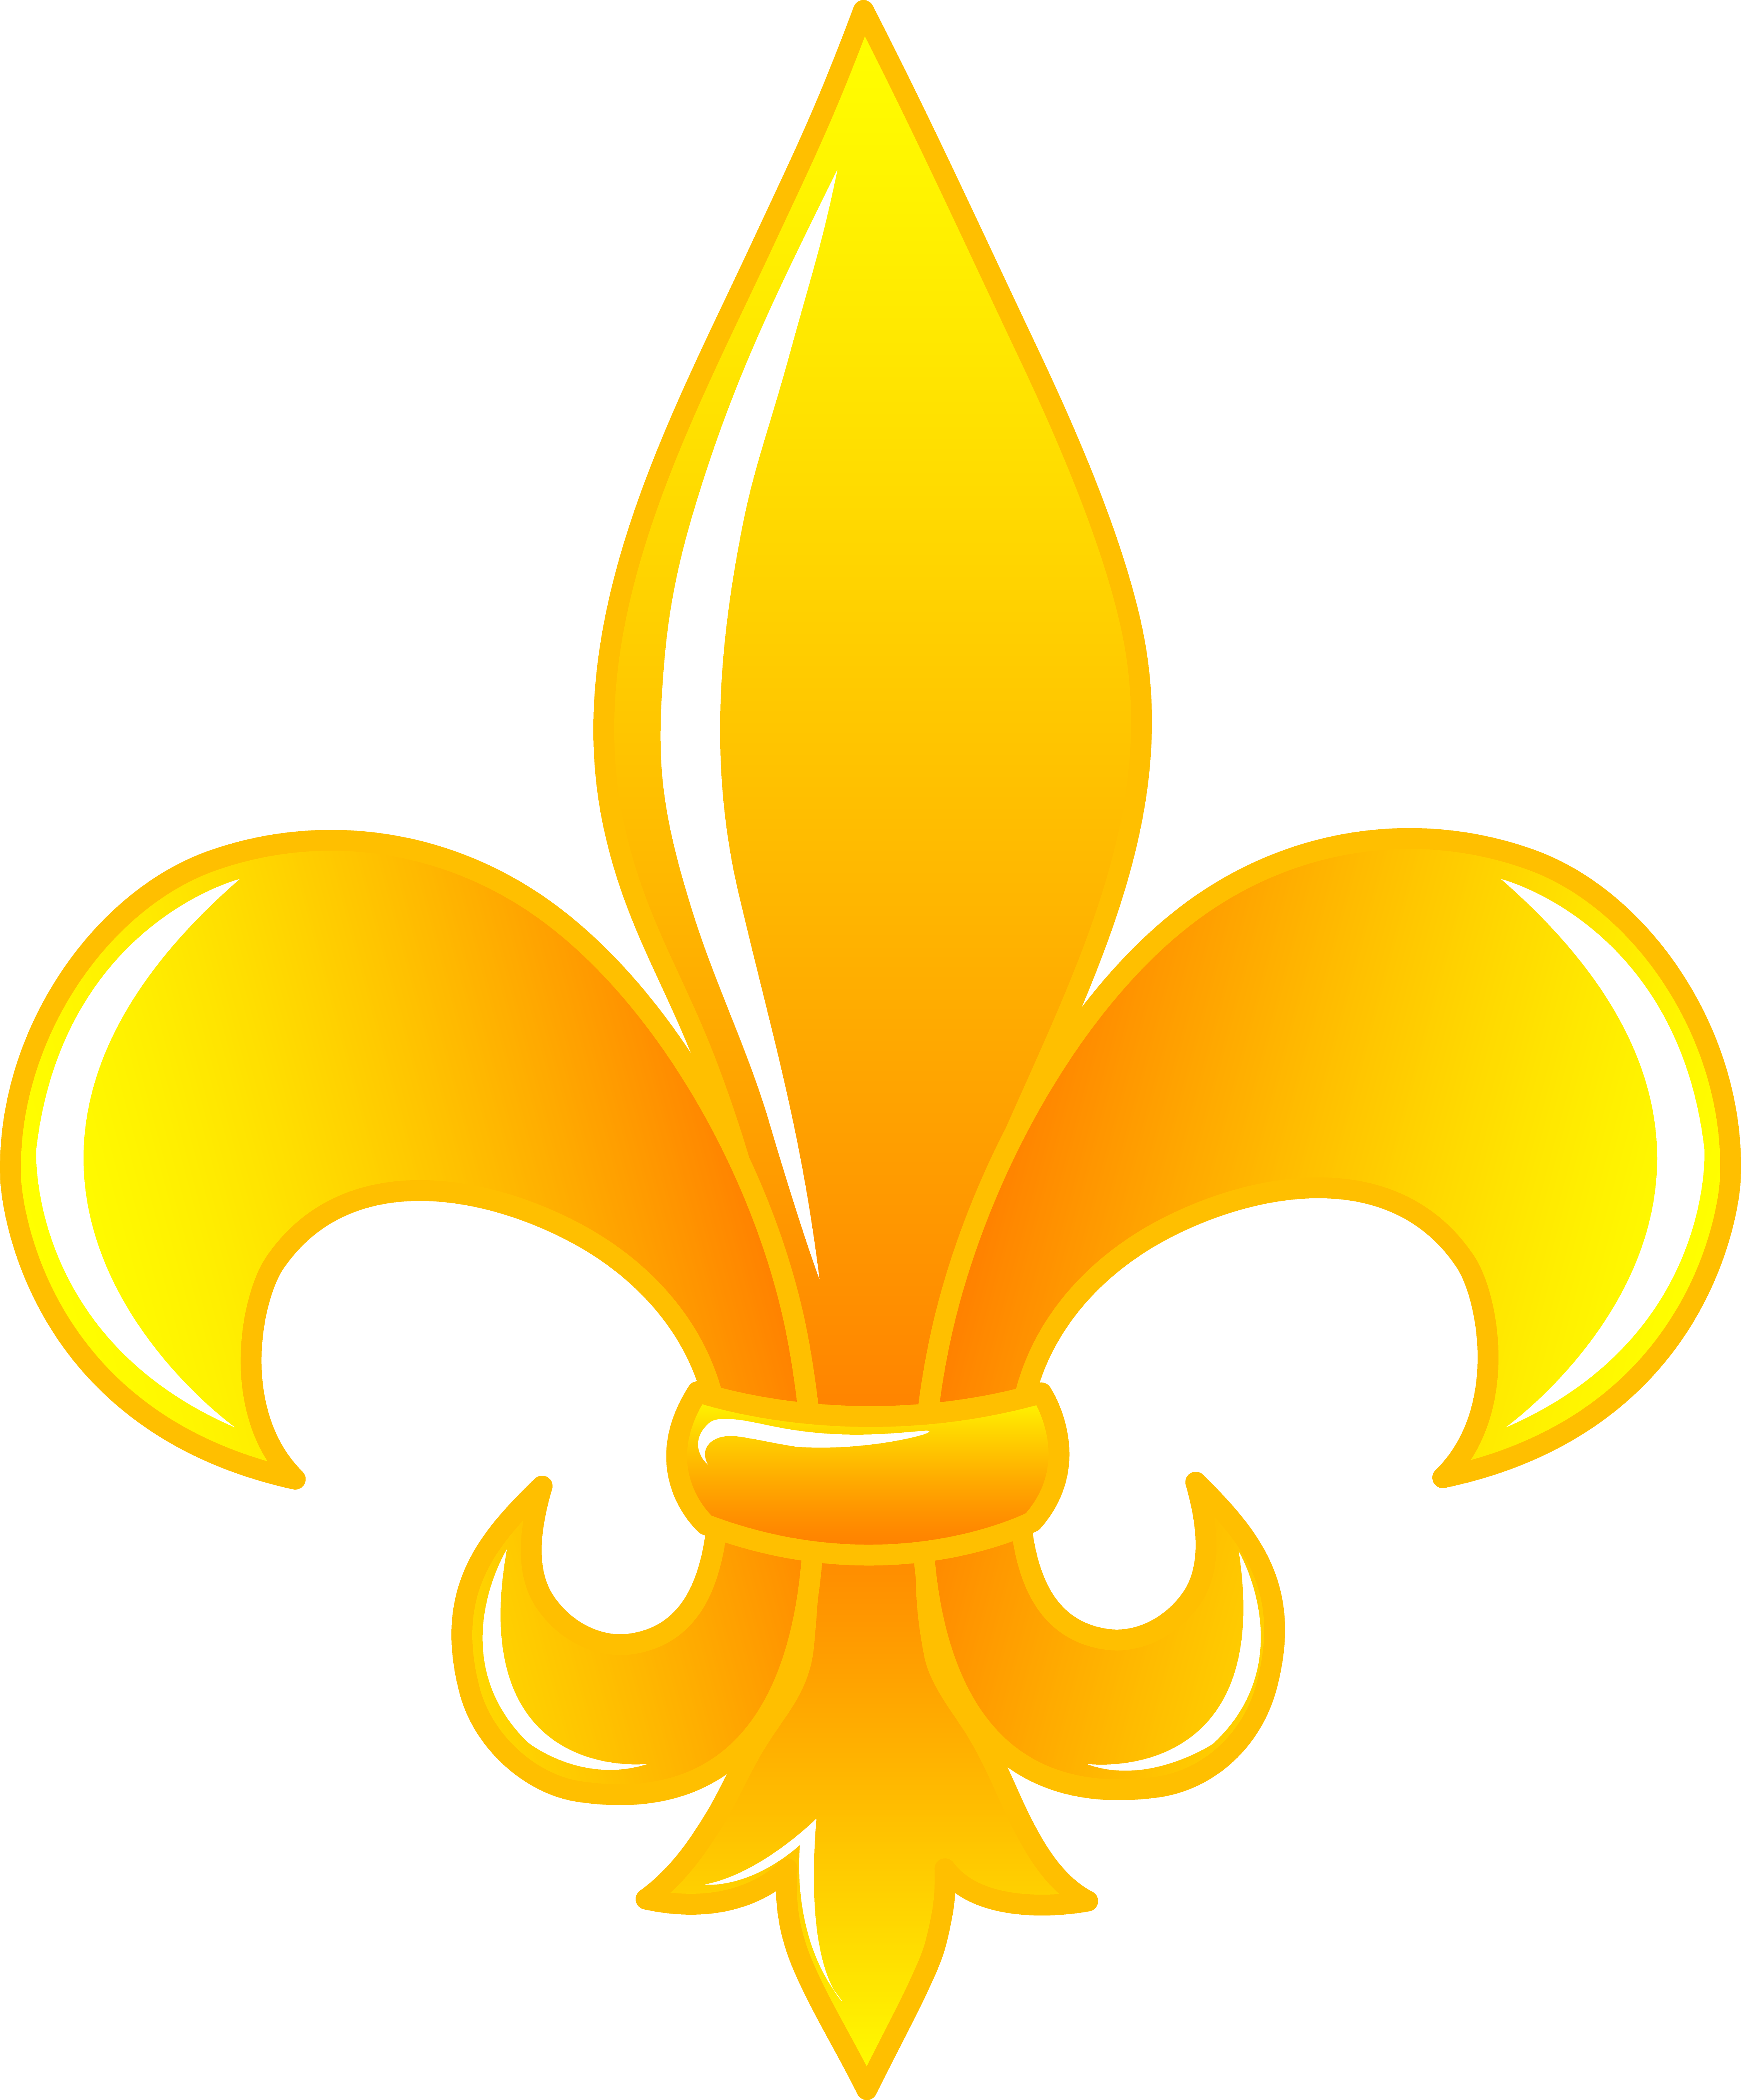 Clipart fleur graphic library library Free Fleur De Lis, Download Free Clip Art, Free Clip Art on Clipart ... graphic library library